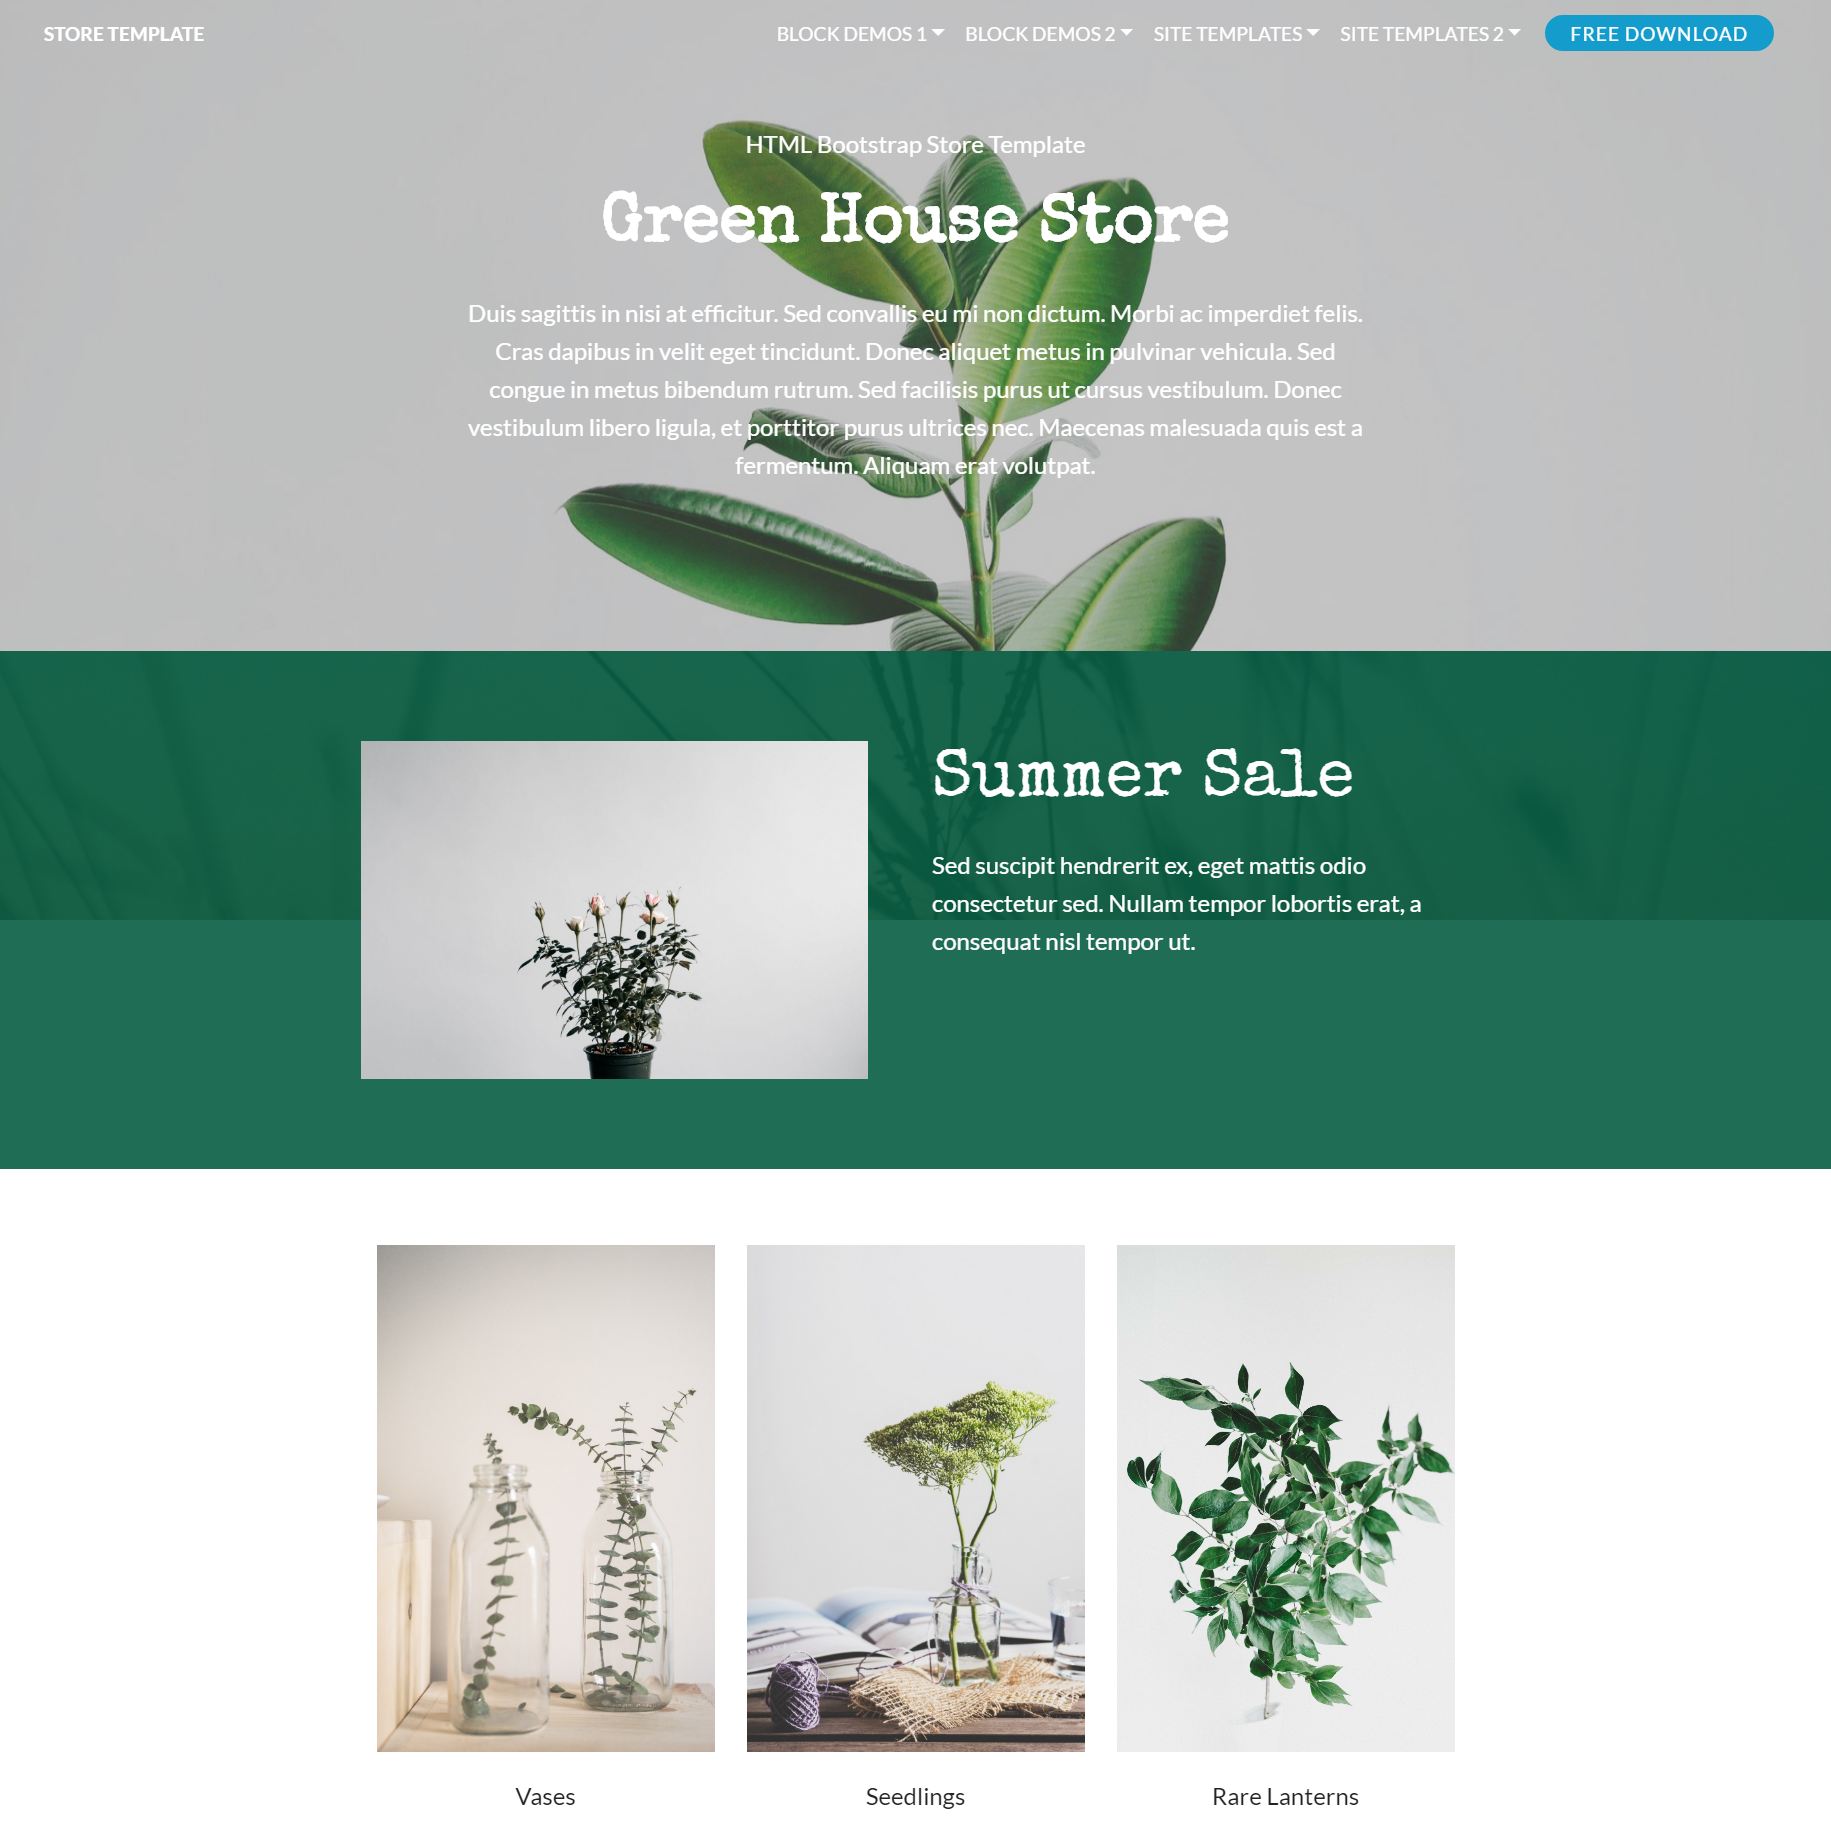 HTML Bootstrap Store Themes